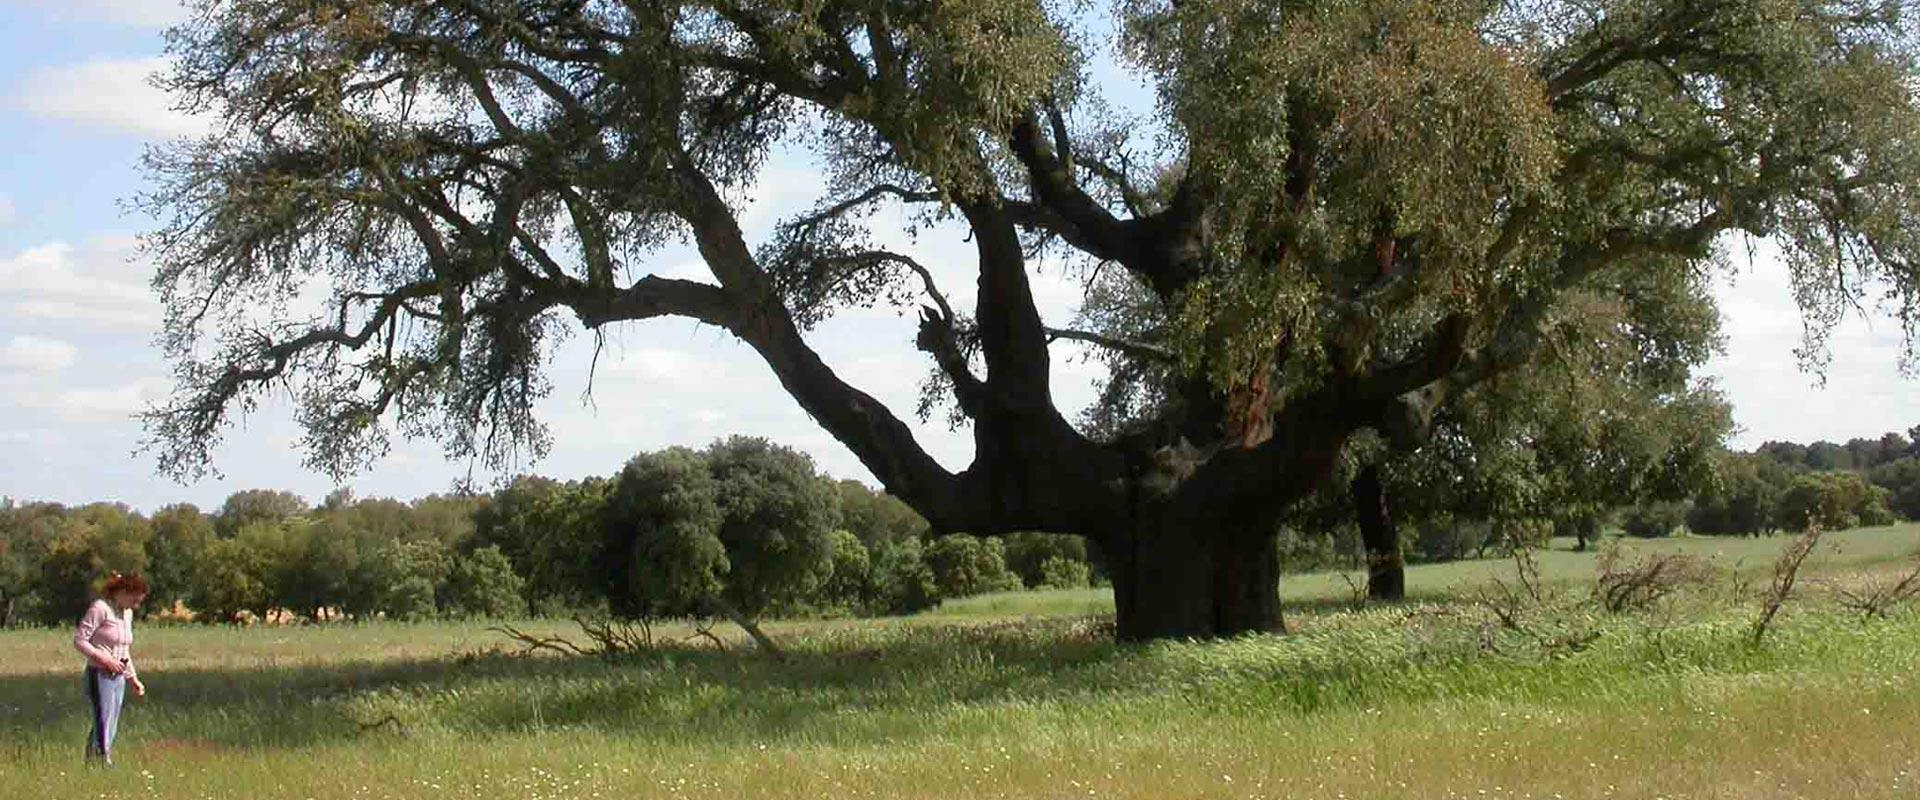 Valdelosa Cork oak Trees